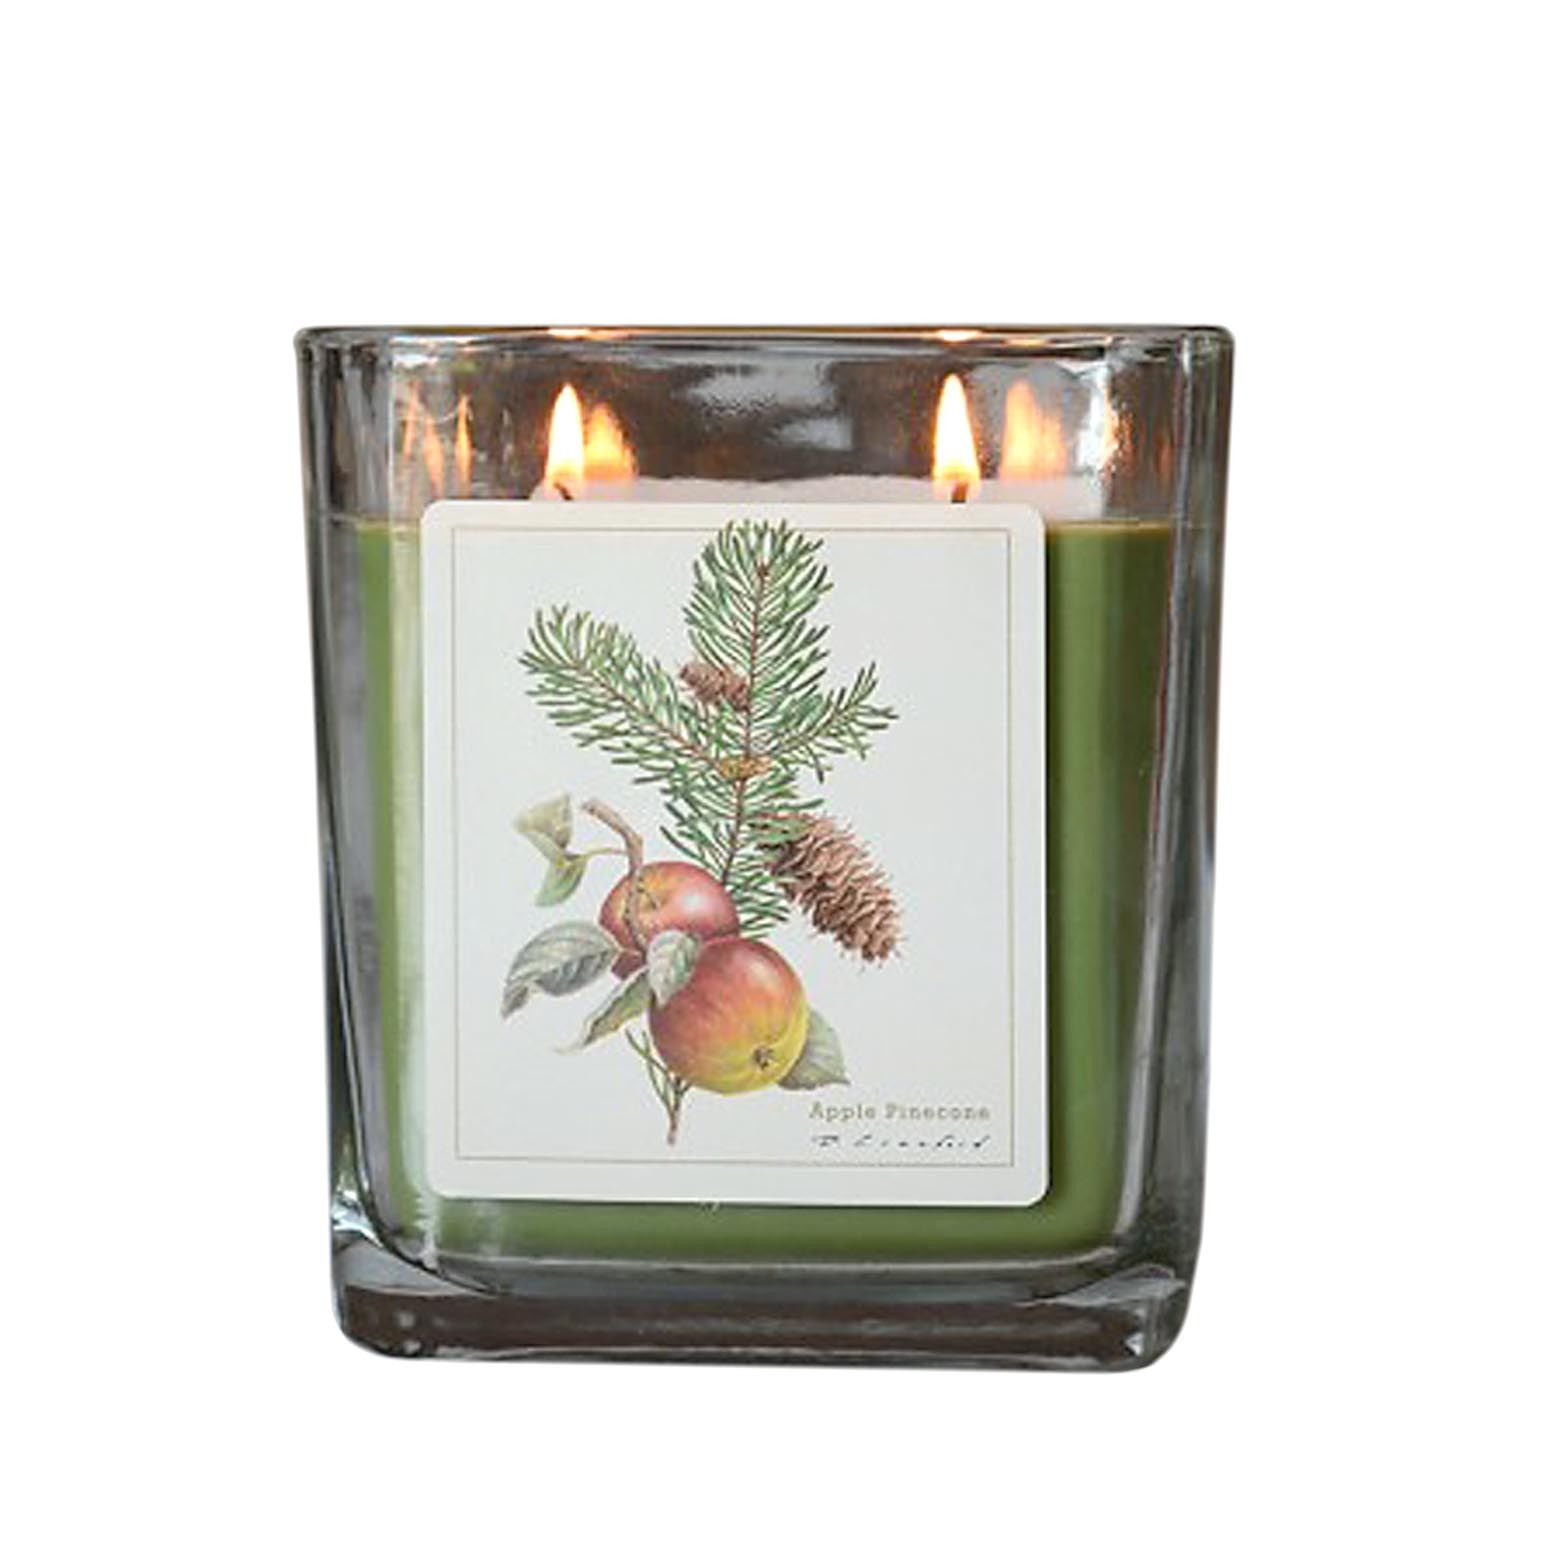 Apple Pinecone Hand Poured Verdure Gift Boxed Soy Candle USA made